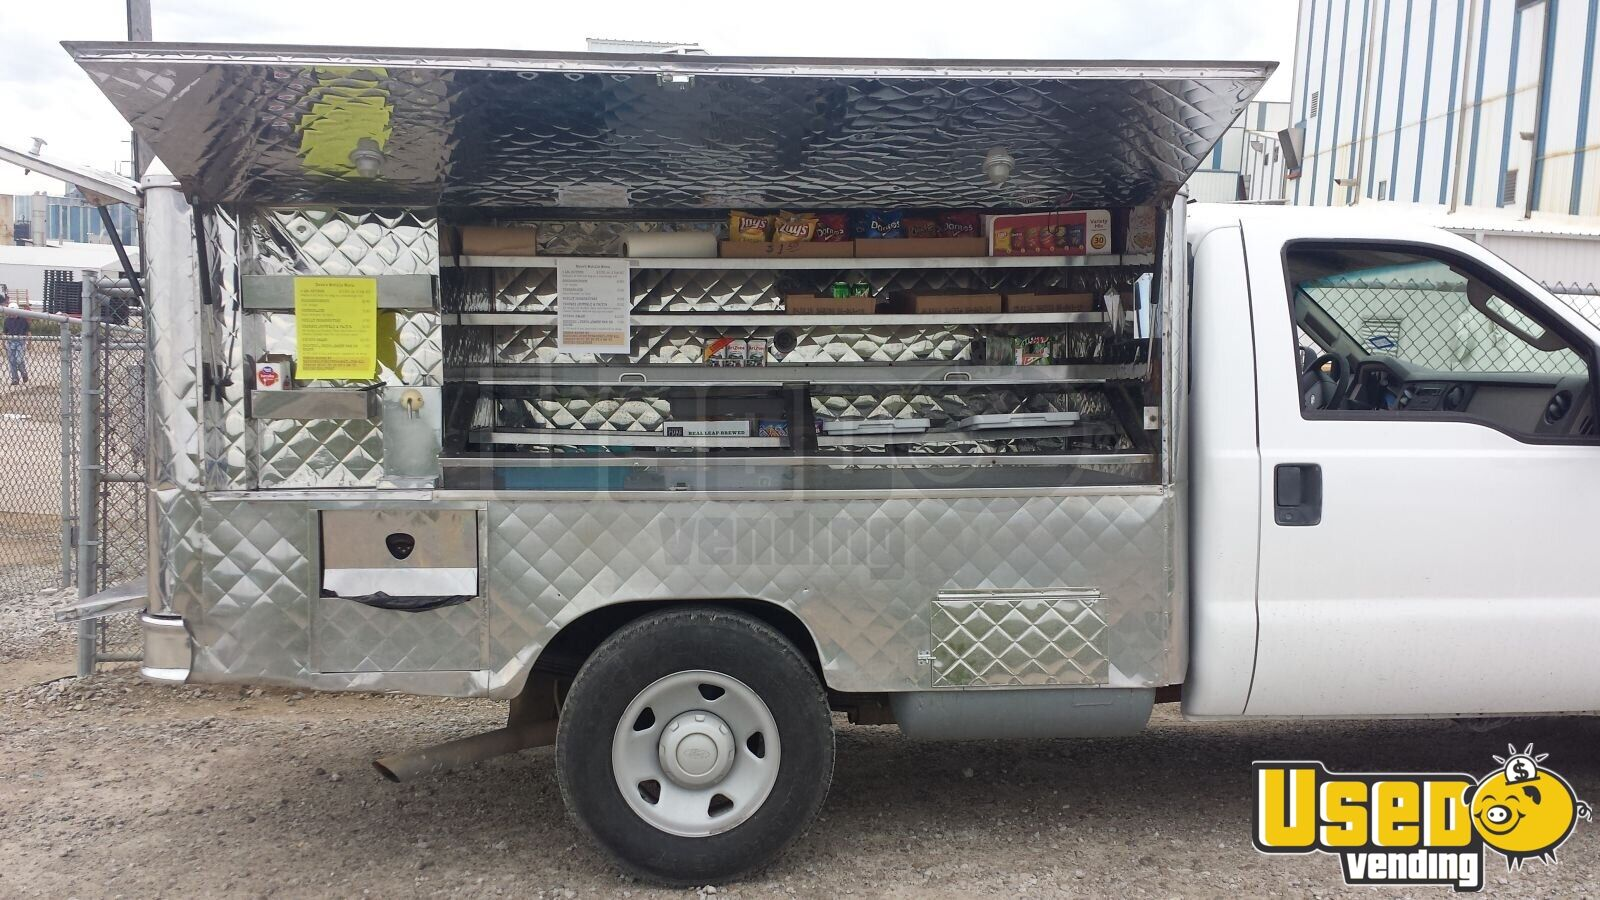 Alchemy Coffee Food Truck Ford Lunch Canteen Truck Used Food Truck For Sale In Iowa